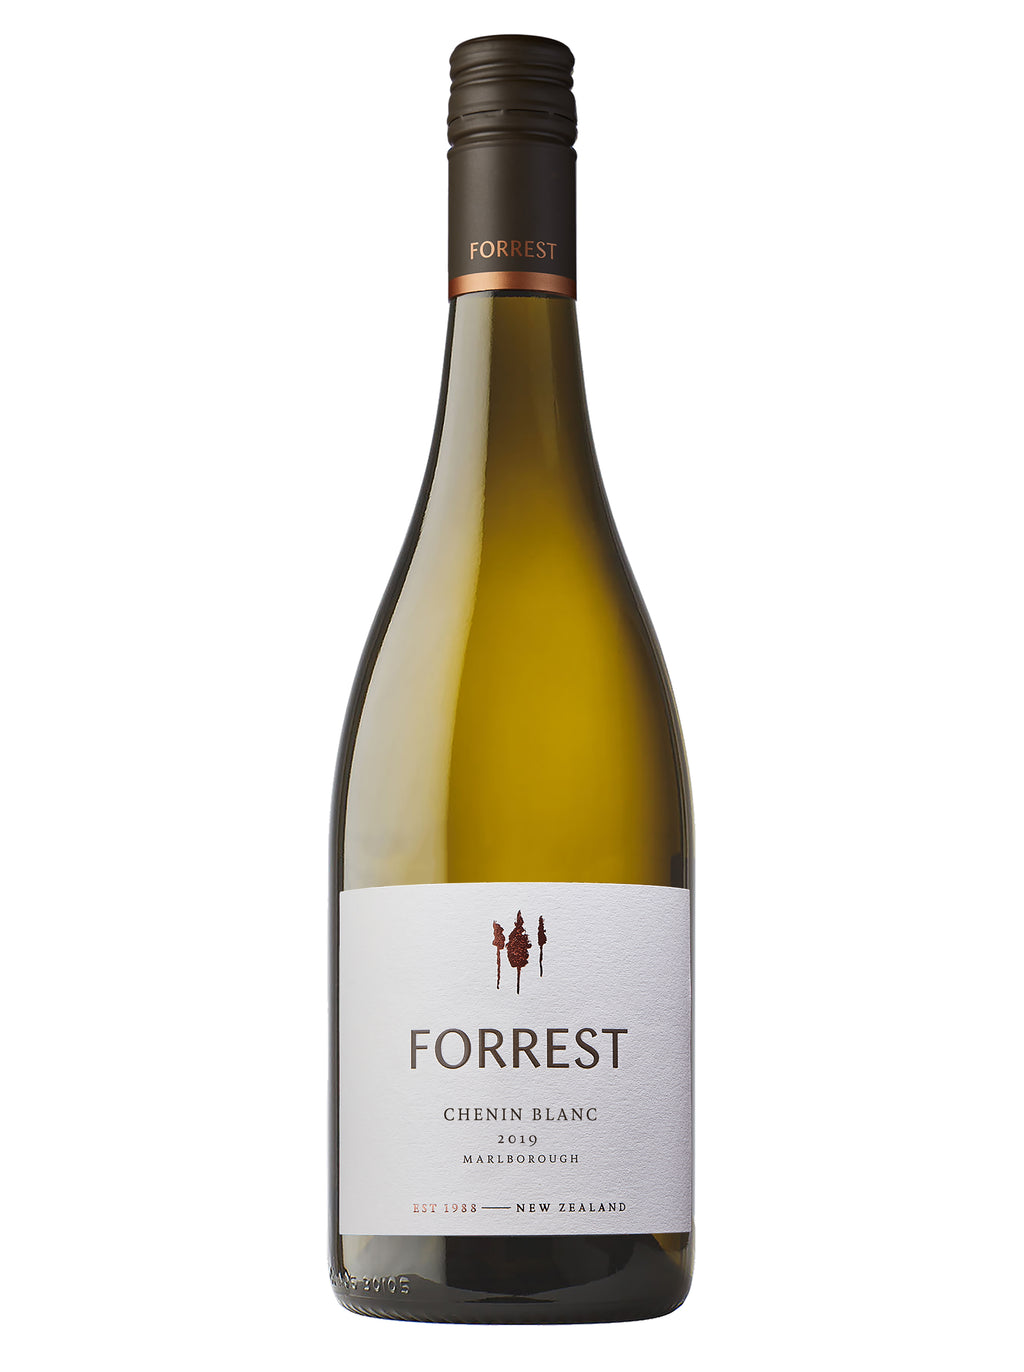 Forrest Chenin Blanc, New Zealand Wine Events, Auckland Wine Events, Auckland Restaurant Month, Marlborough Wine, Online Wineshop, Winetopia